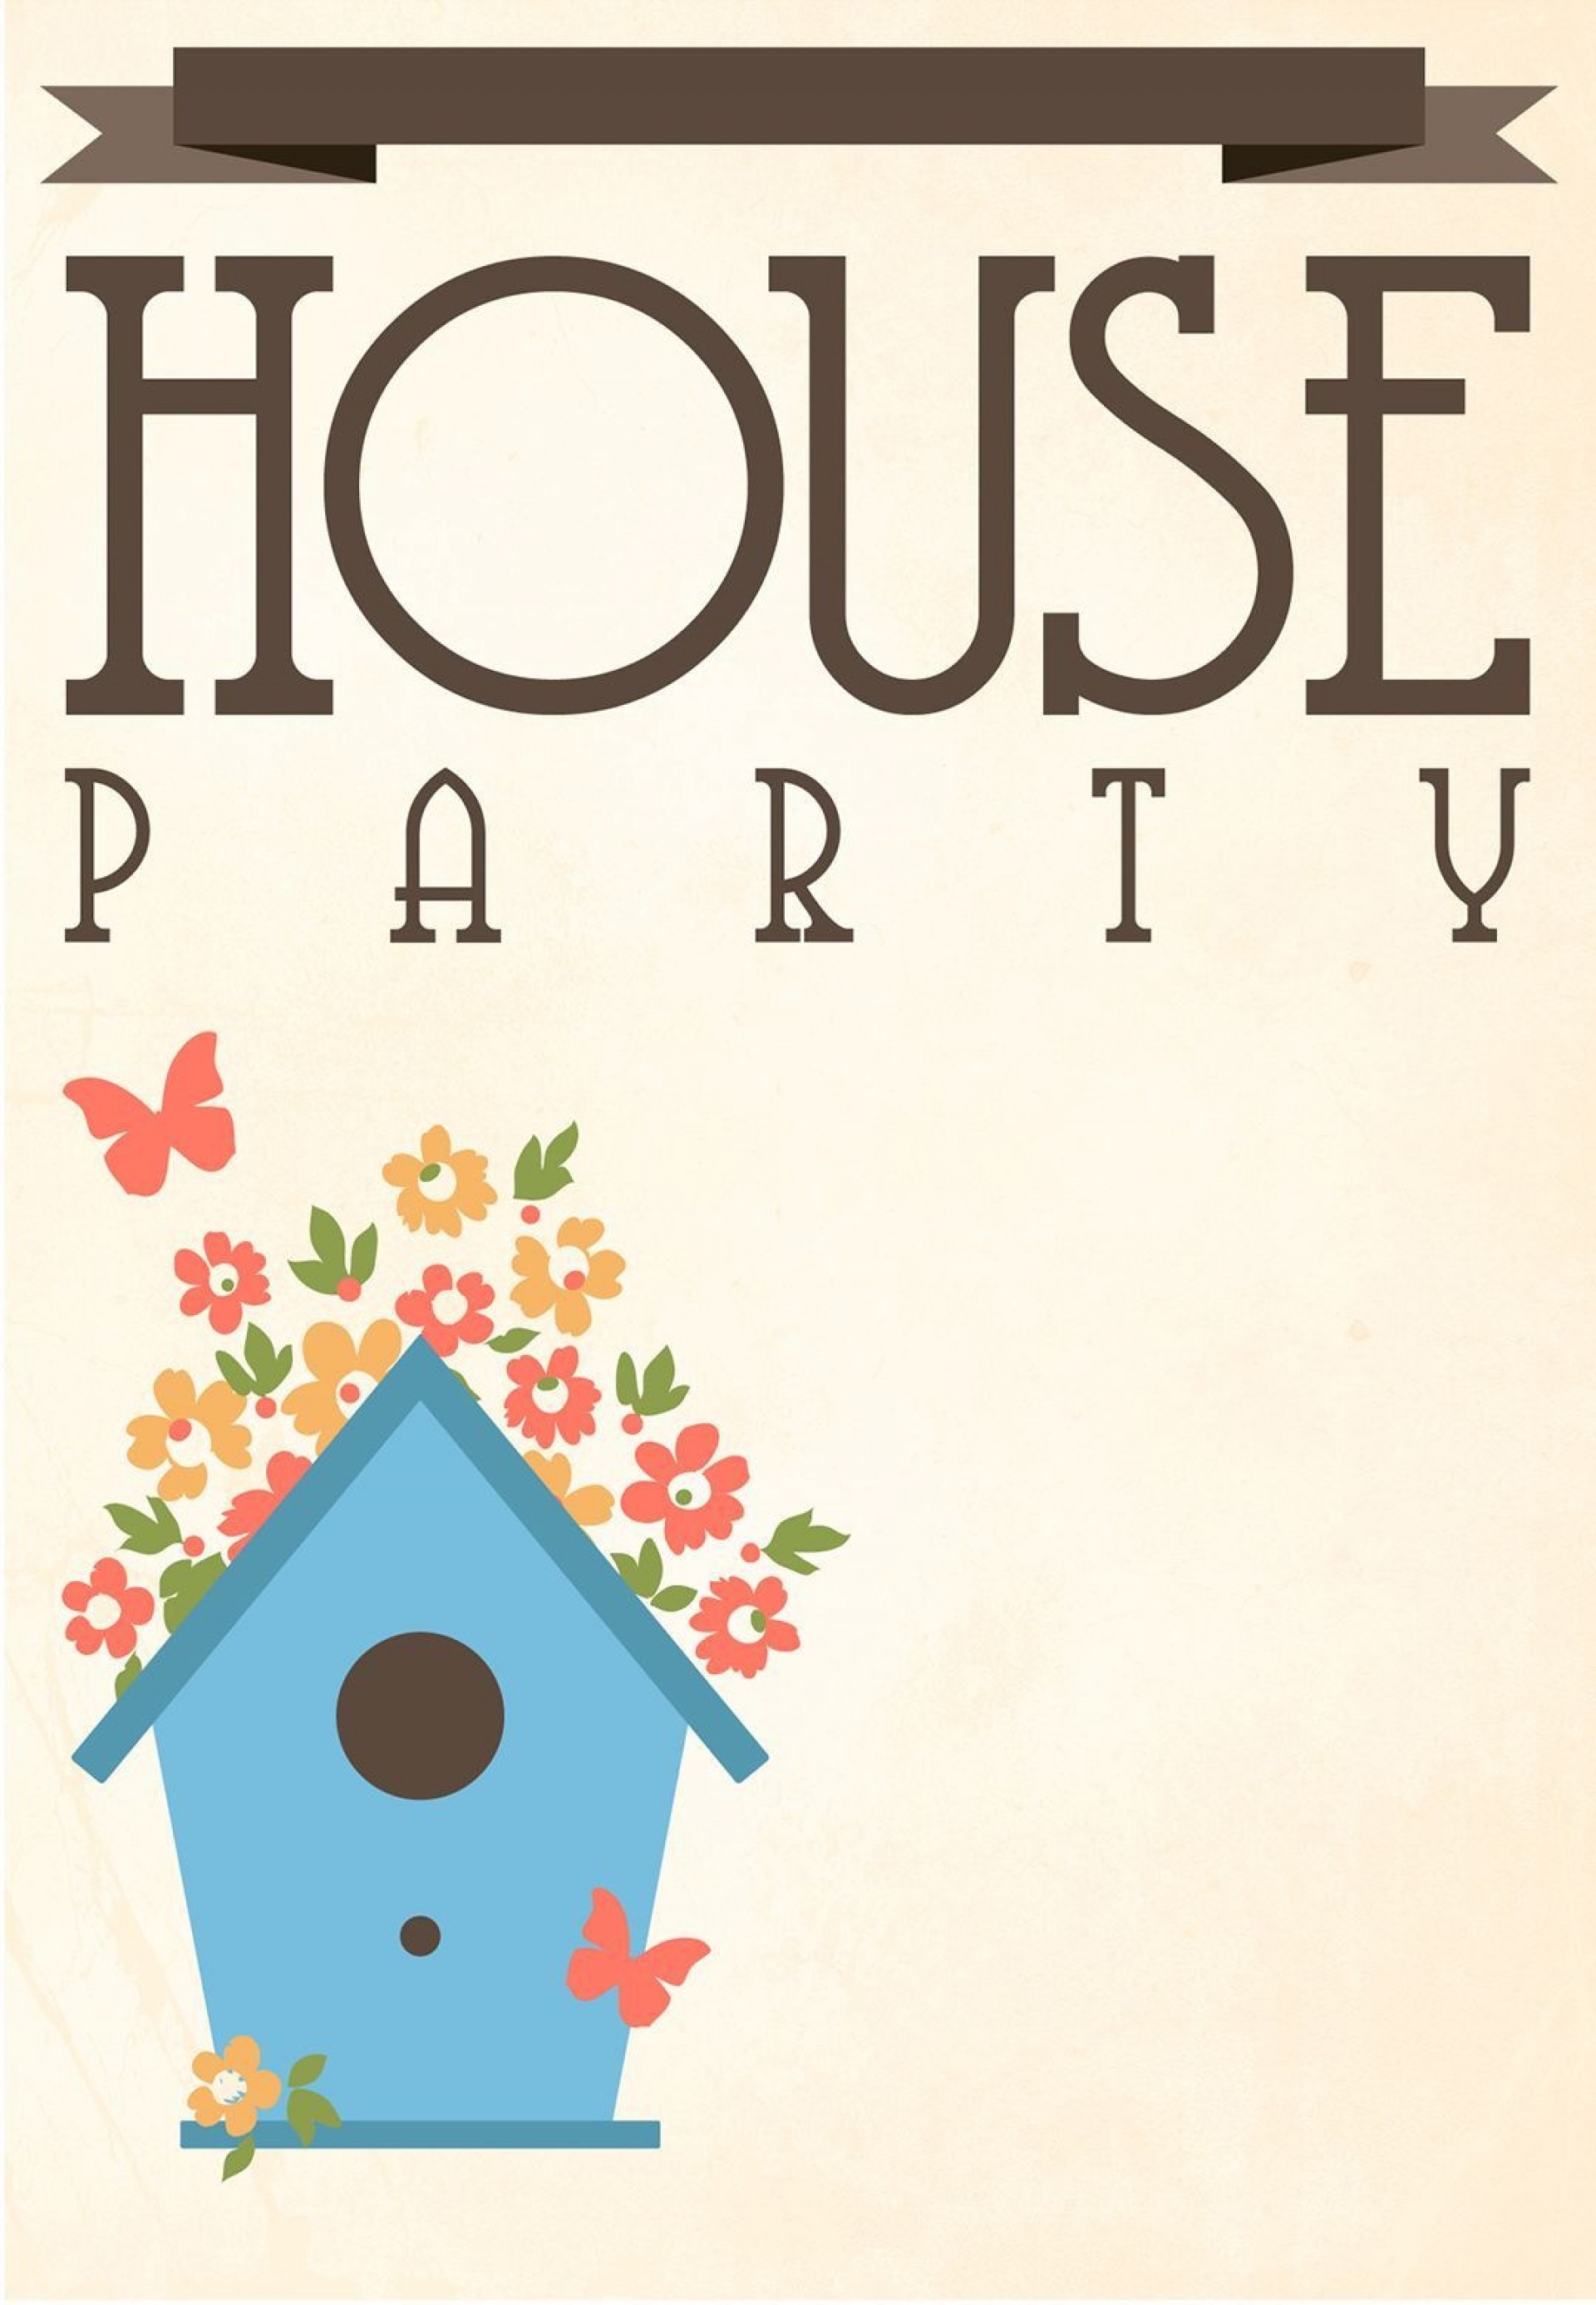 004 Rare Housewarming Party Invite Template Highest Clarity  Templates Invitation Maker Editable1920